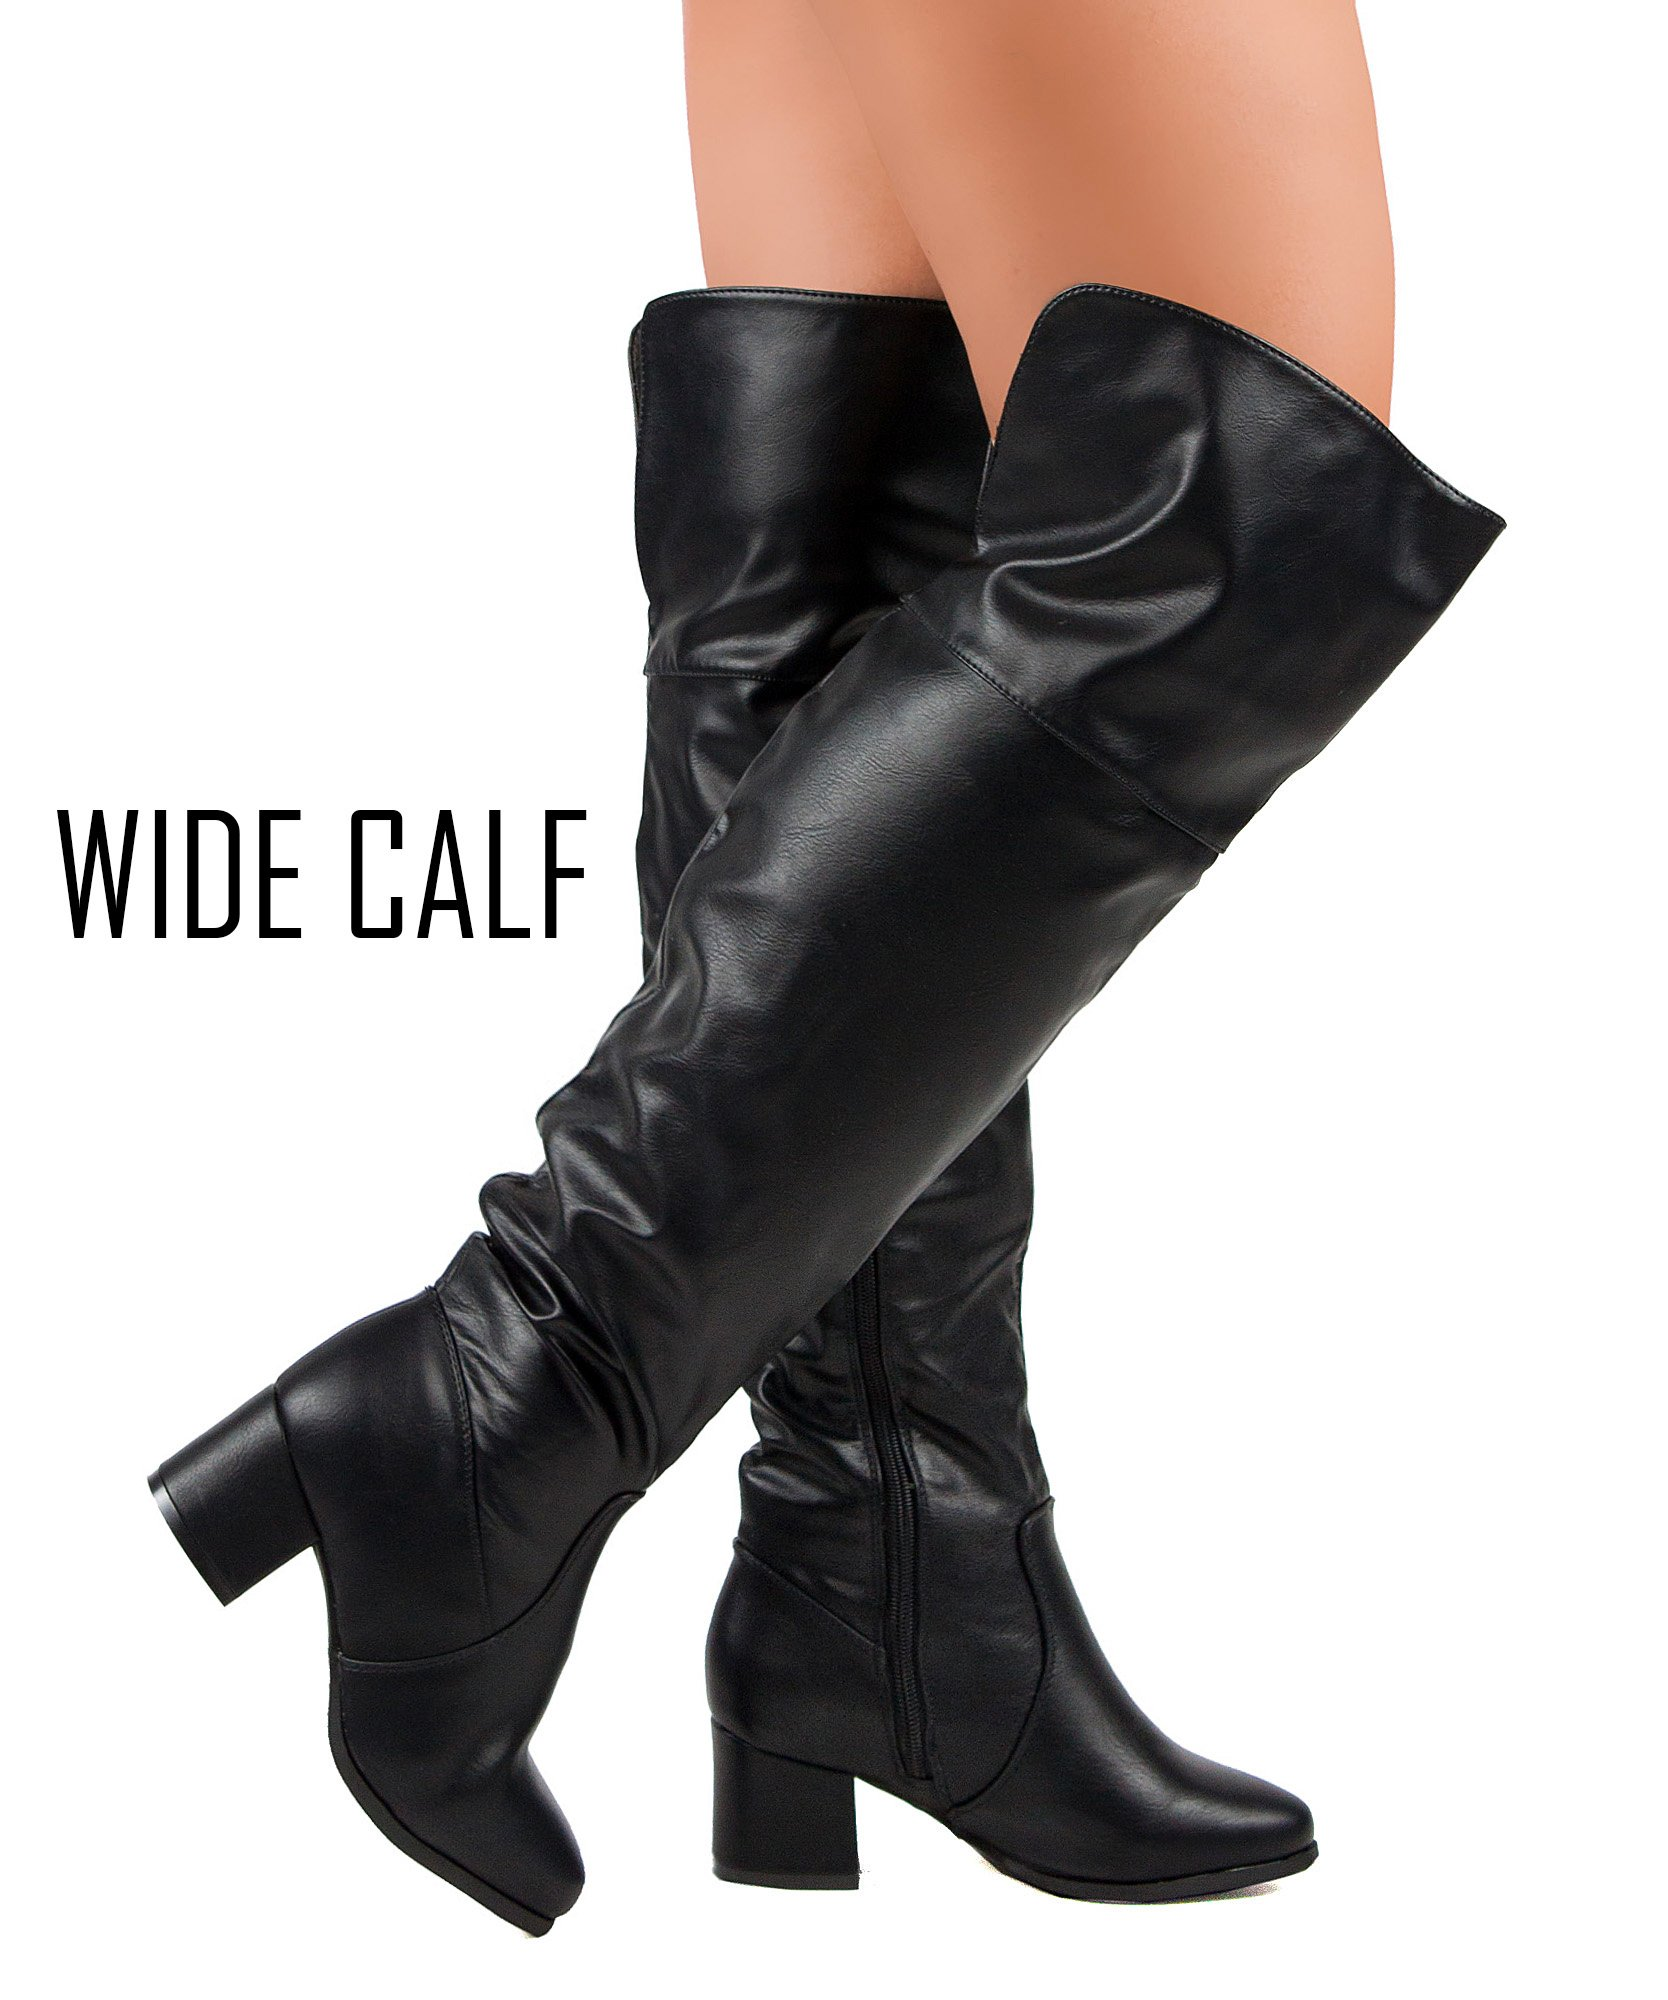 RF ROOM OF FASHION Paris-32 Faux Leather Fitted Low Chunky Stacked Heel Over The Knee High Thigh High Boots Black -Wide Calf (8.5)